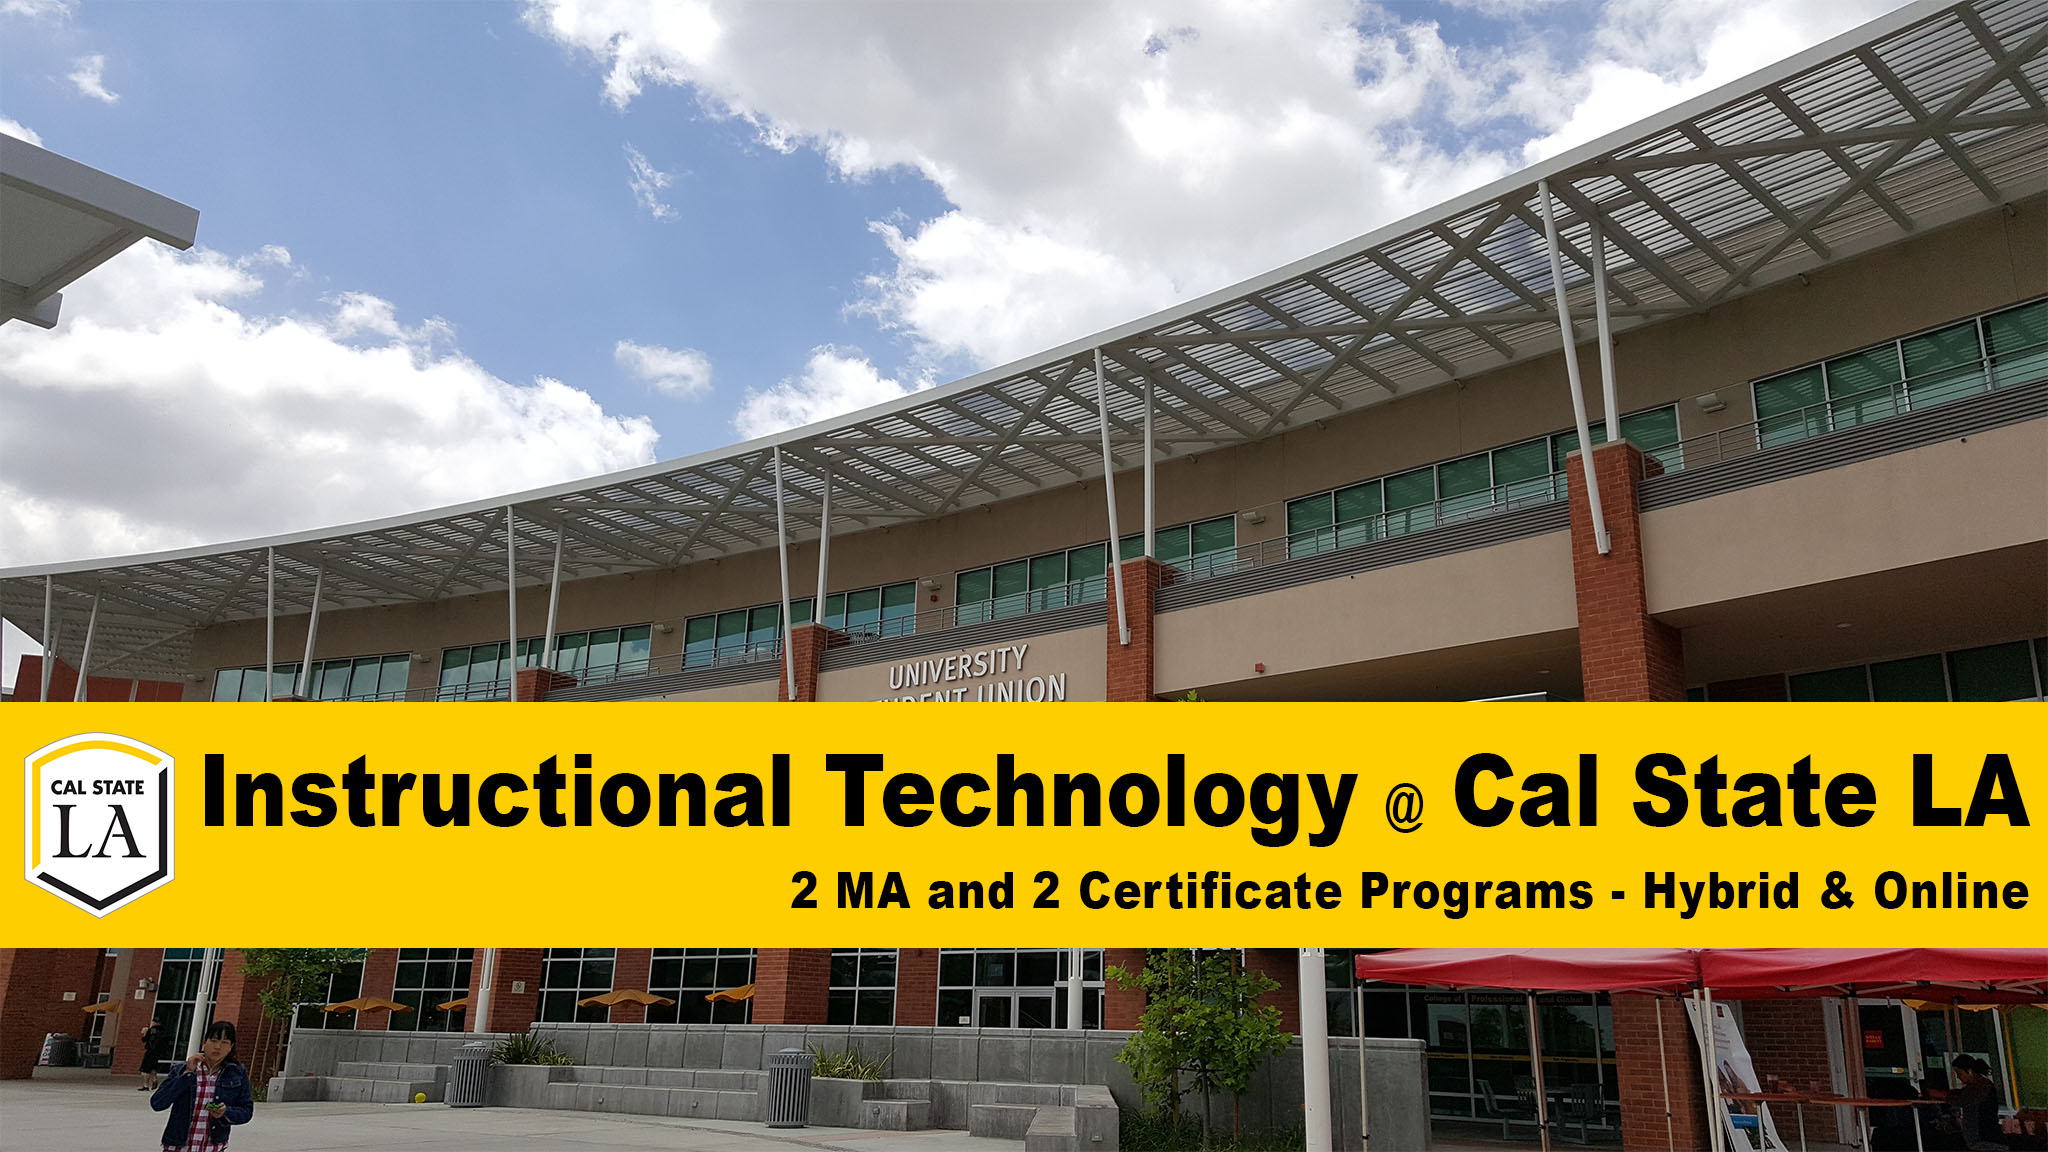 Instructional Technology at Cal State LA. We have two MA options and two Certificates